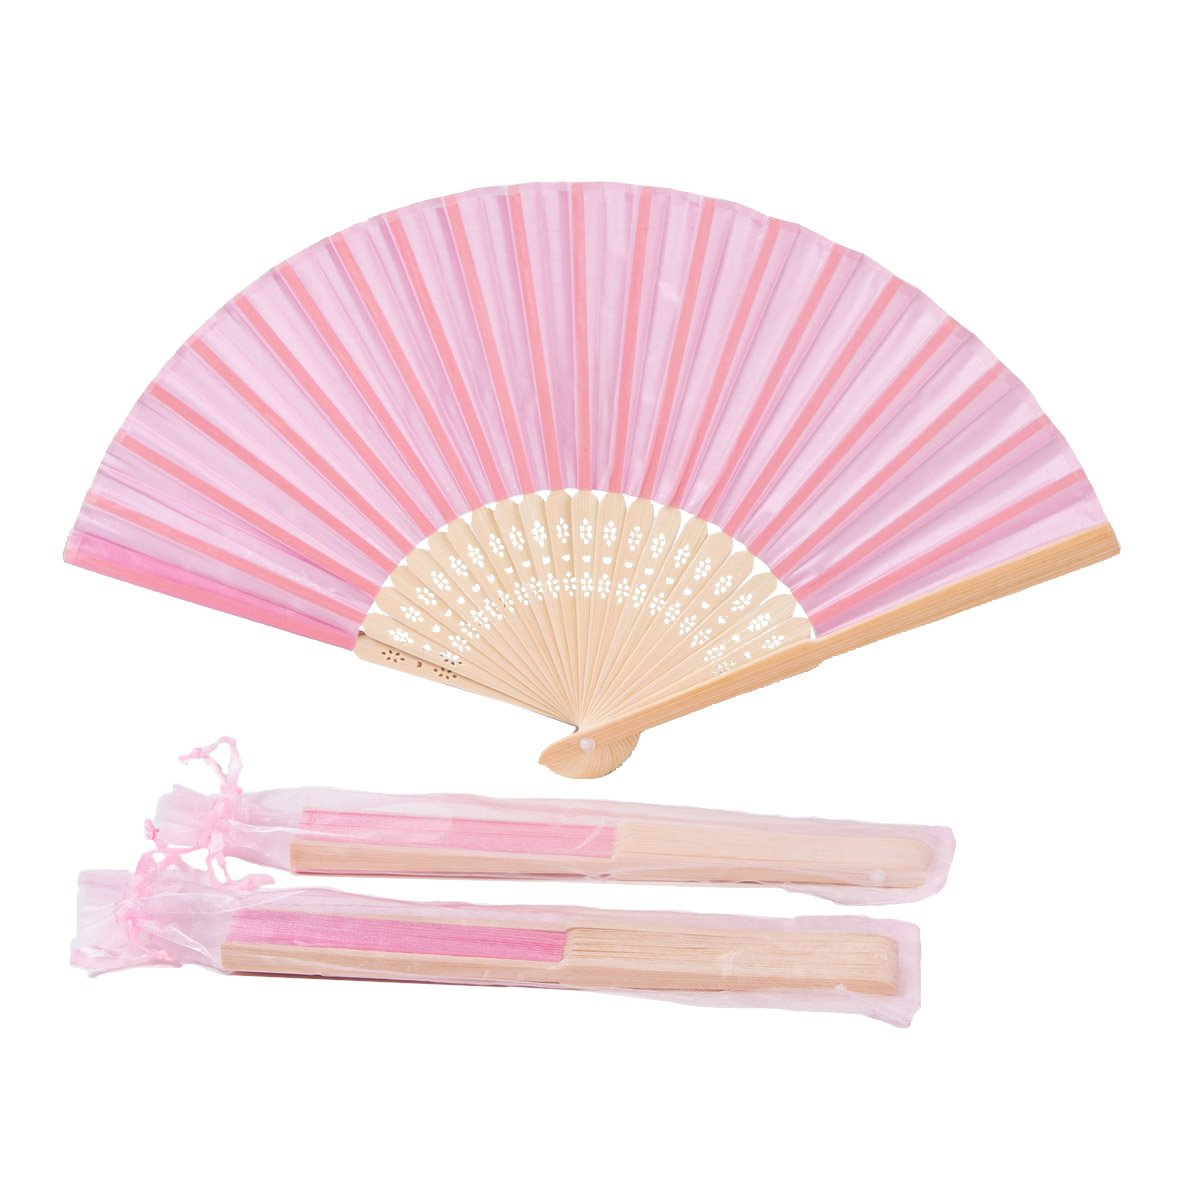 Sepwedd 50pcs pink Imitated Silk Fabric Bamboo Folded Hand Fan Bridal Dancing Props Church Wedding Gift Party Favors with gift bags